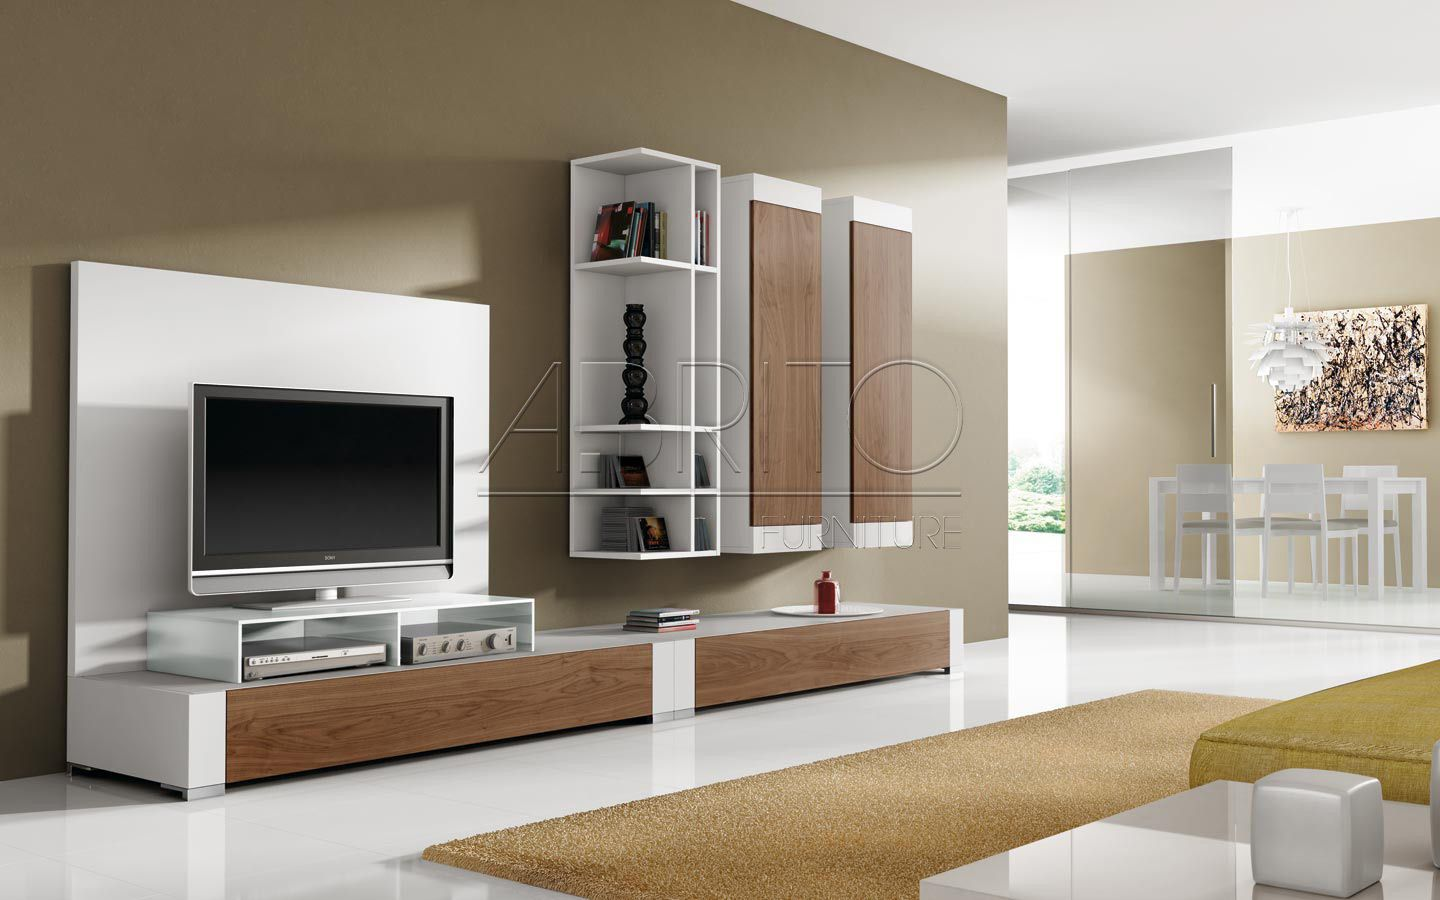 Modern Tv Wall Units Images Spaces Pinterest Tv Units Modern Tv Wall Units And Modern Tv Wall